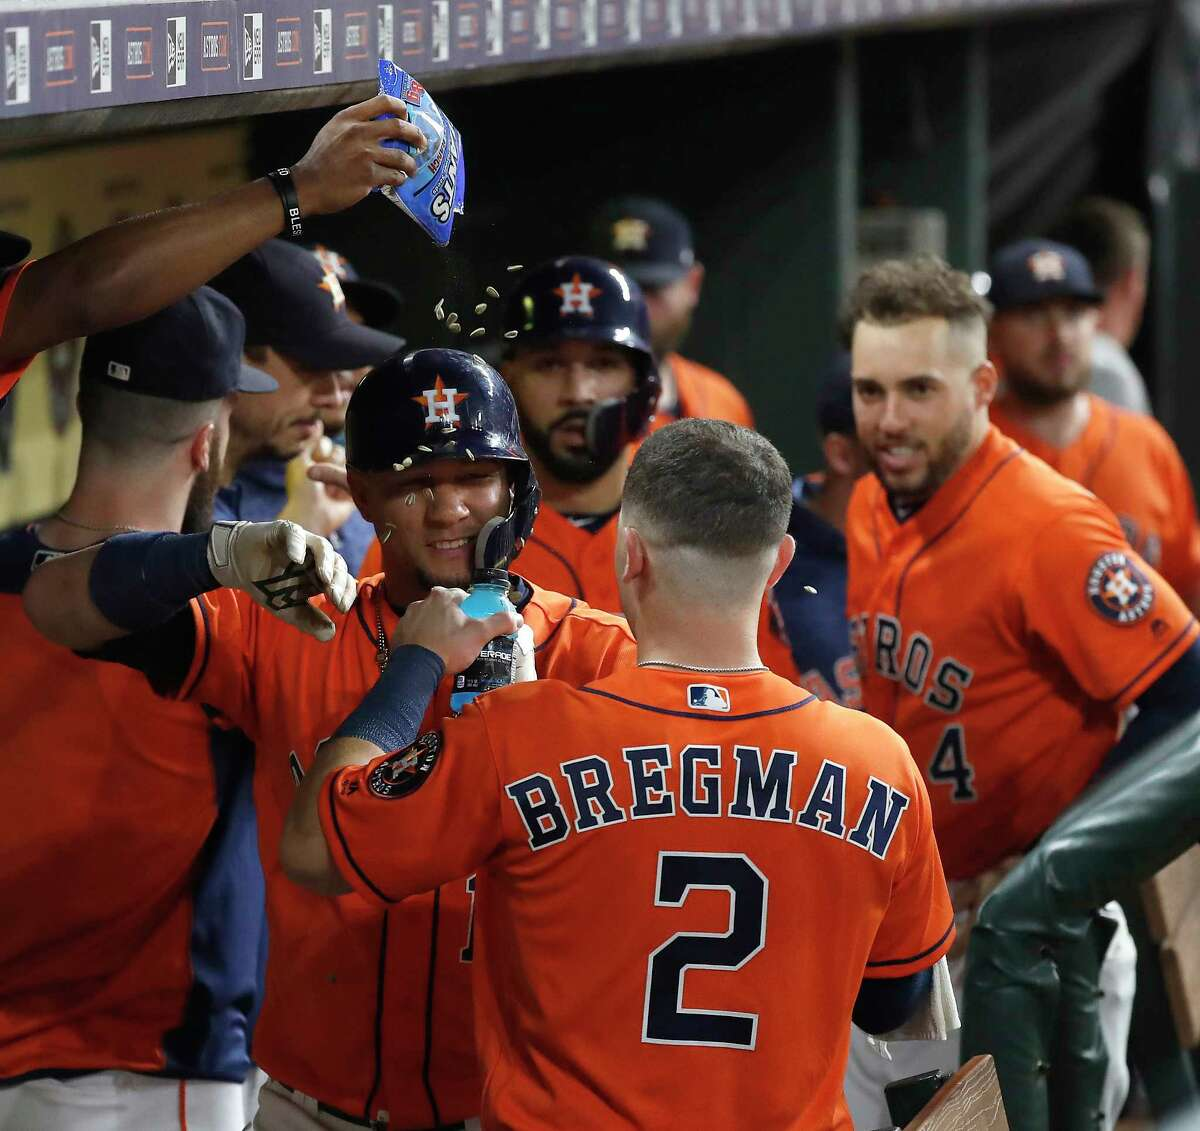 Houston Astros Yuli Gurriel (10) gets a sunflower seed shower after his second home run of the night during the third inning of an MLB baseball game at Minute Maid Park, Friday, September 21, 2018, in Houston.